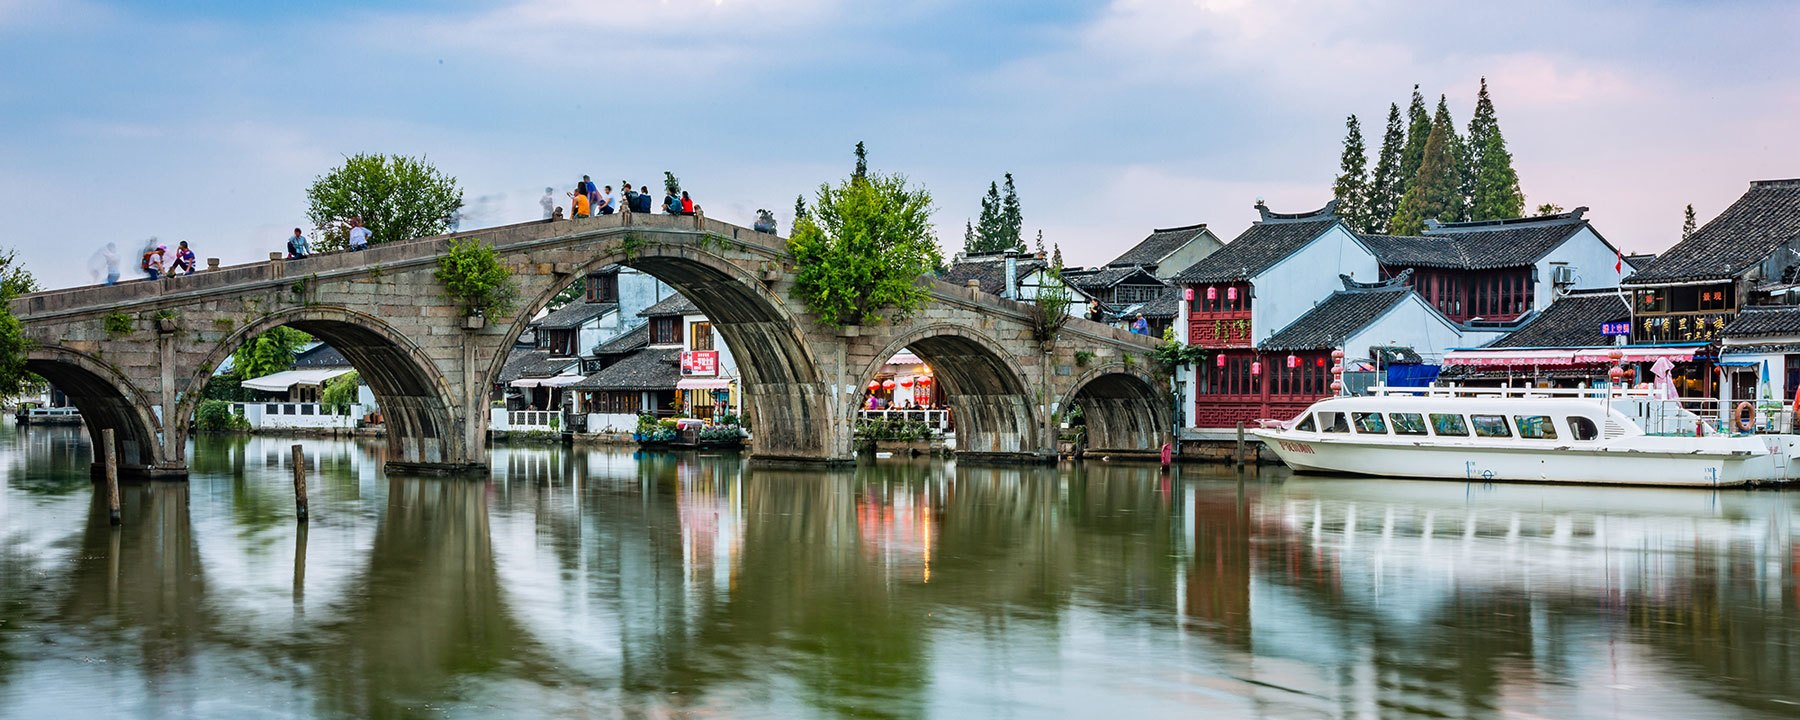 Shanghai travel guide: the Fangsheng Bridge at Zhujiajiao Water Town.